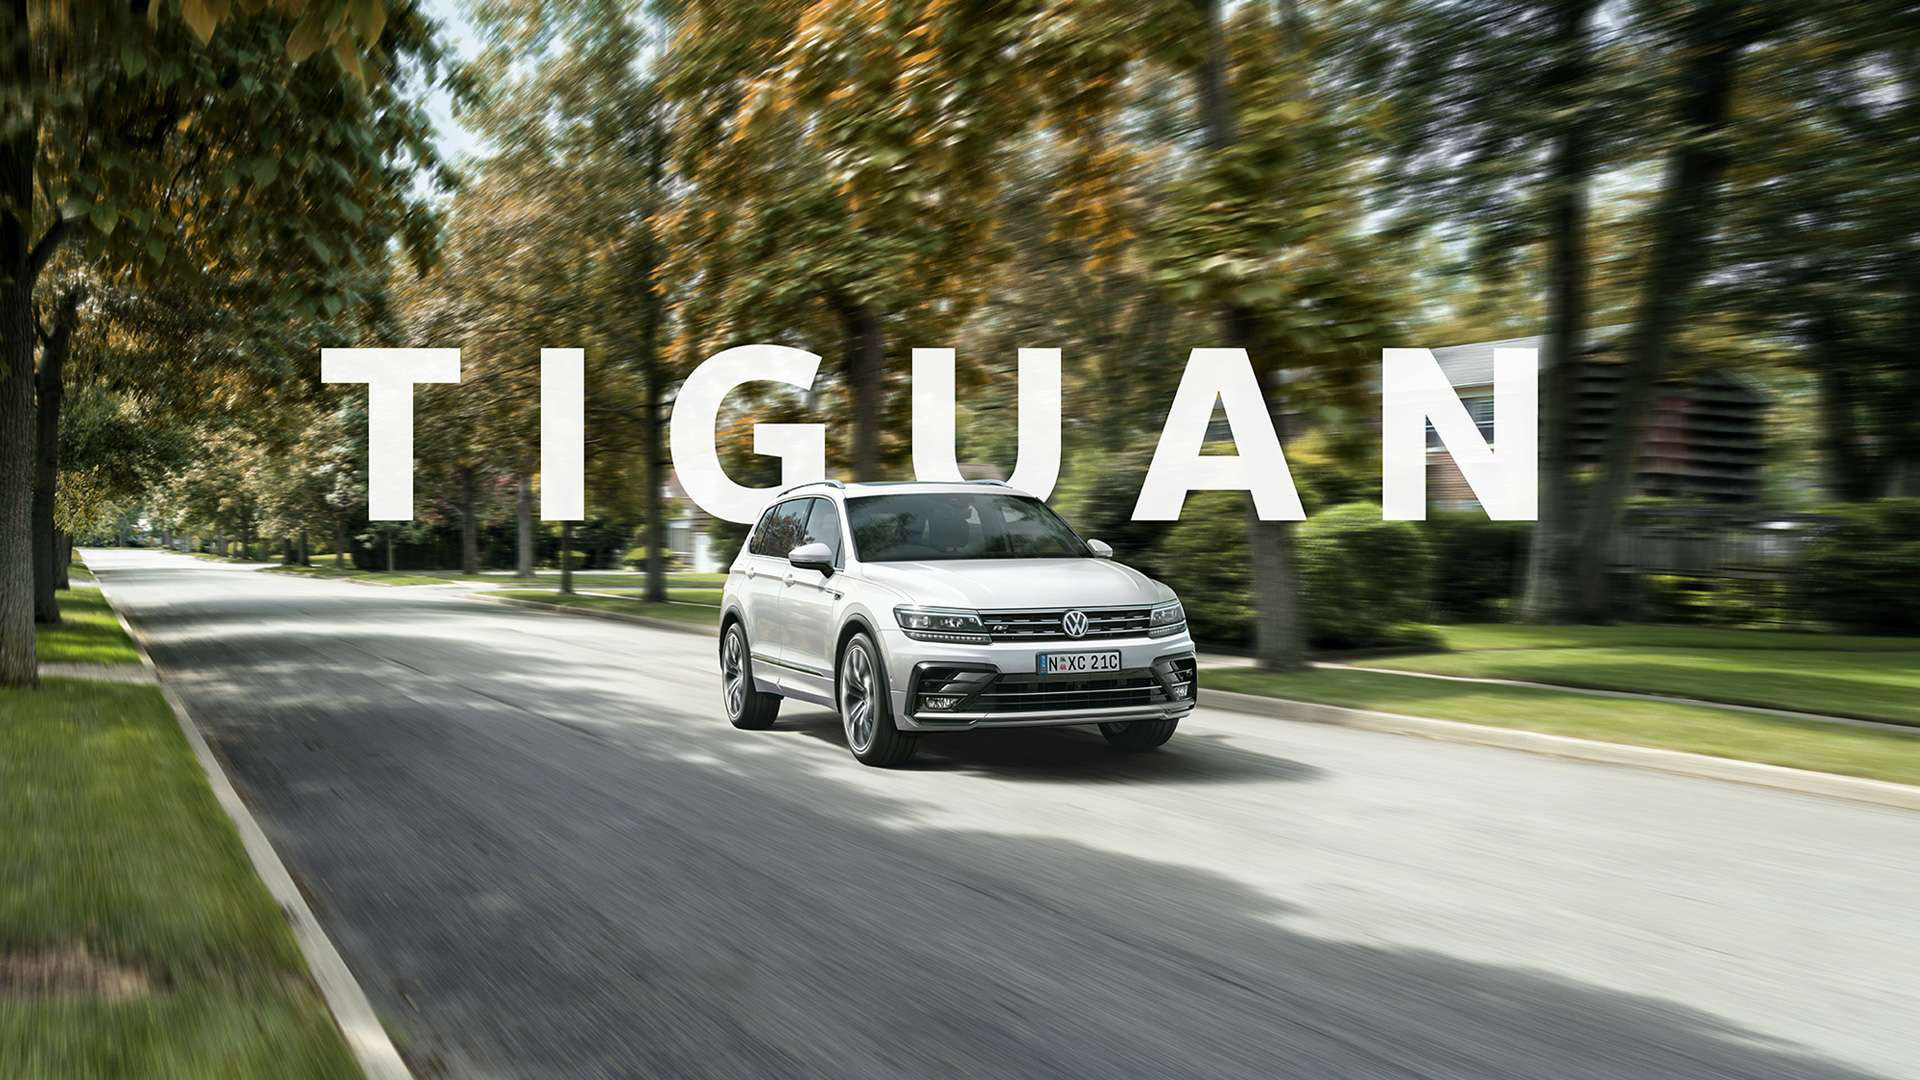 Tiguan The grown-up SUV for those who aren't ready to grow up.